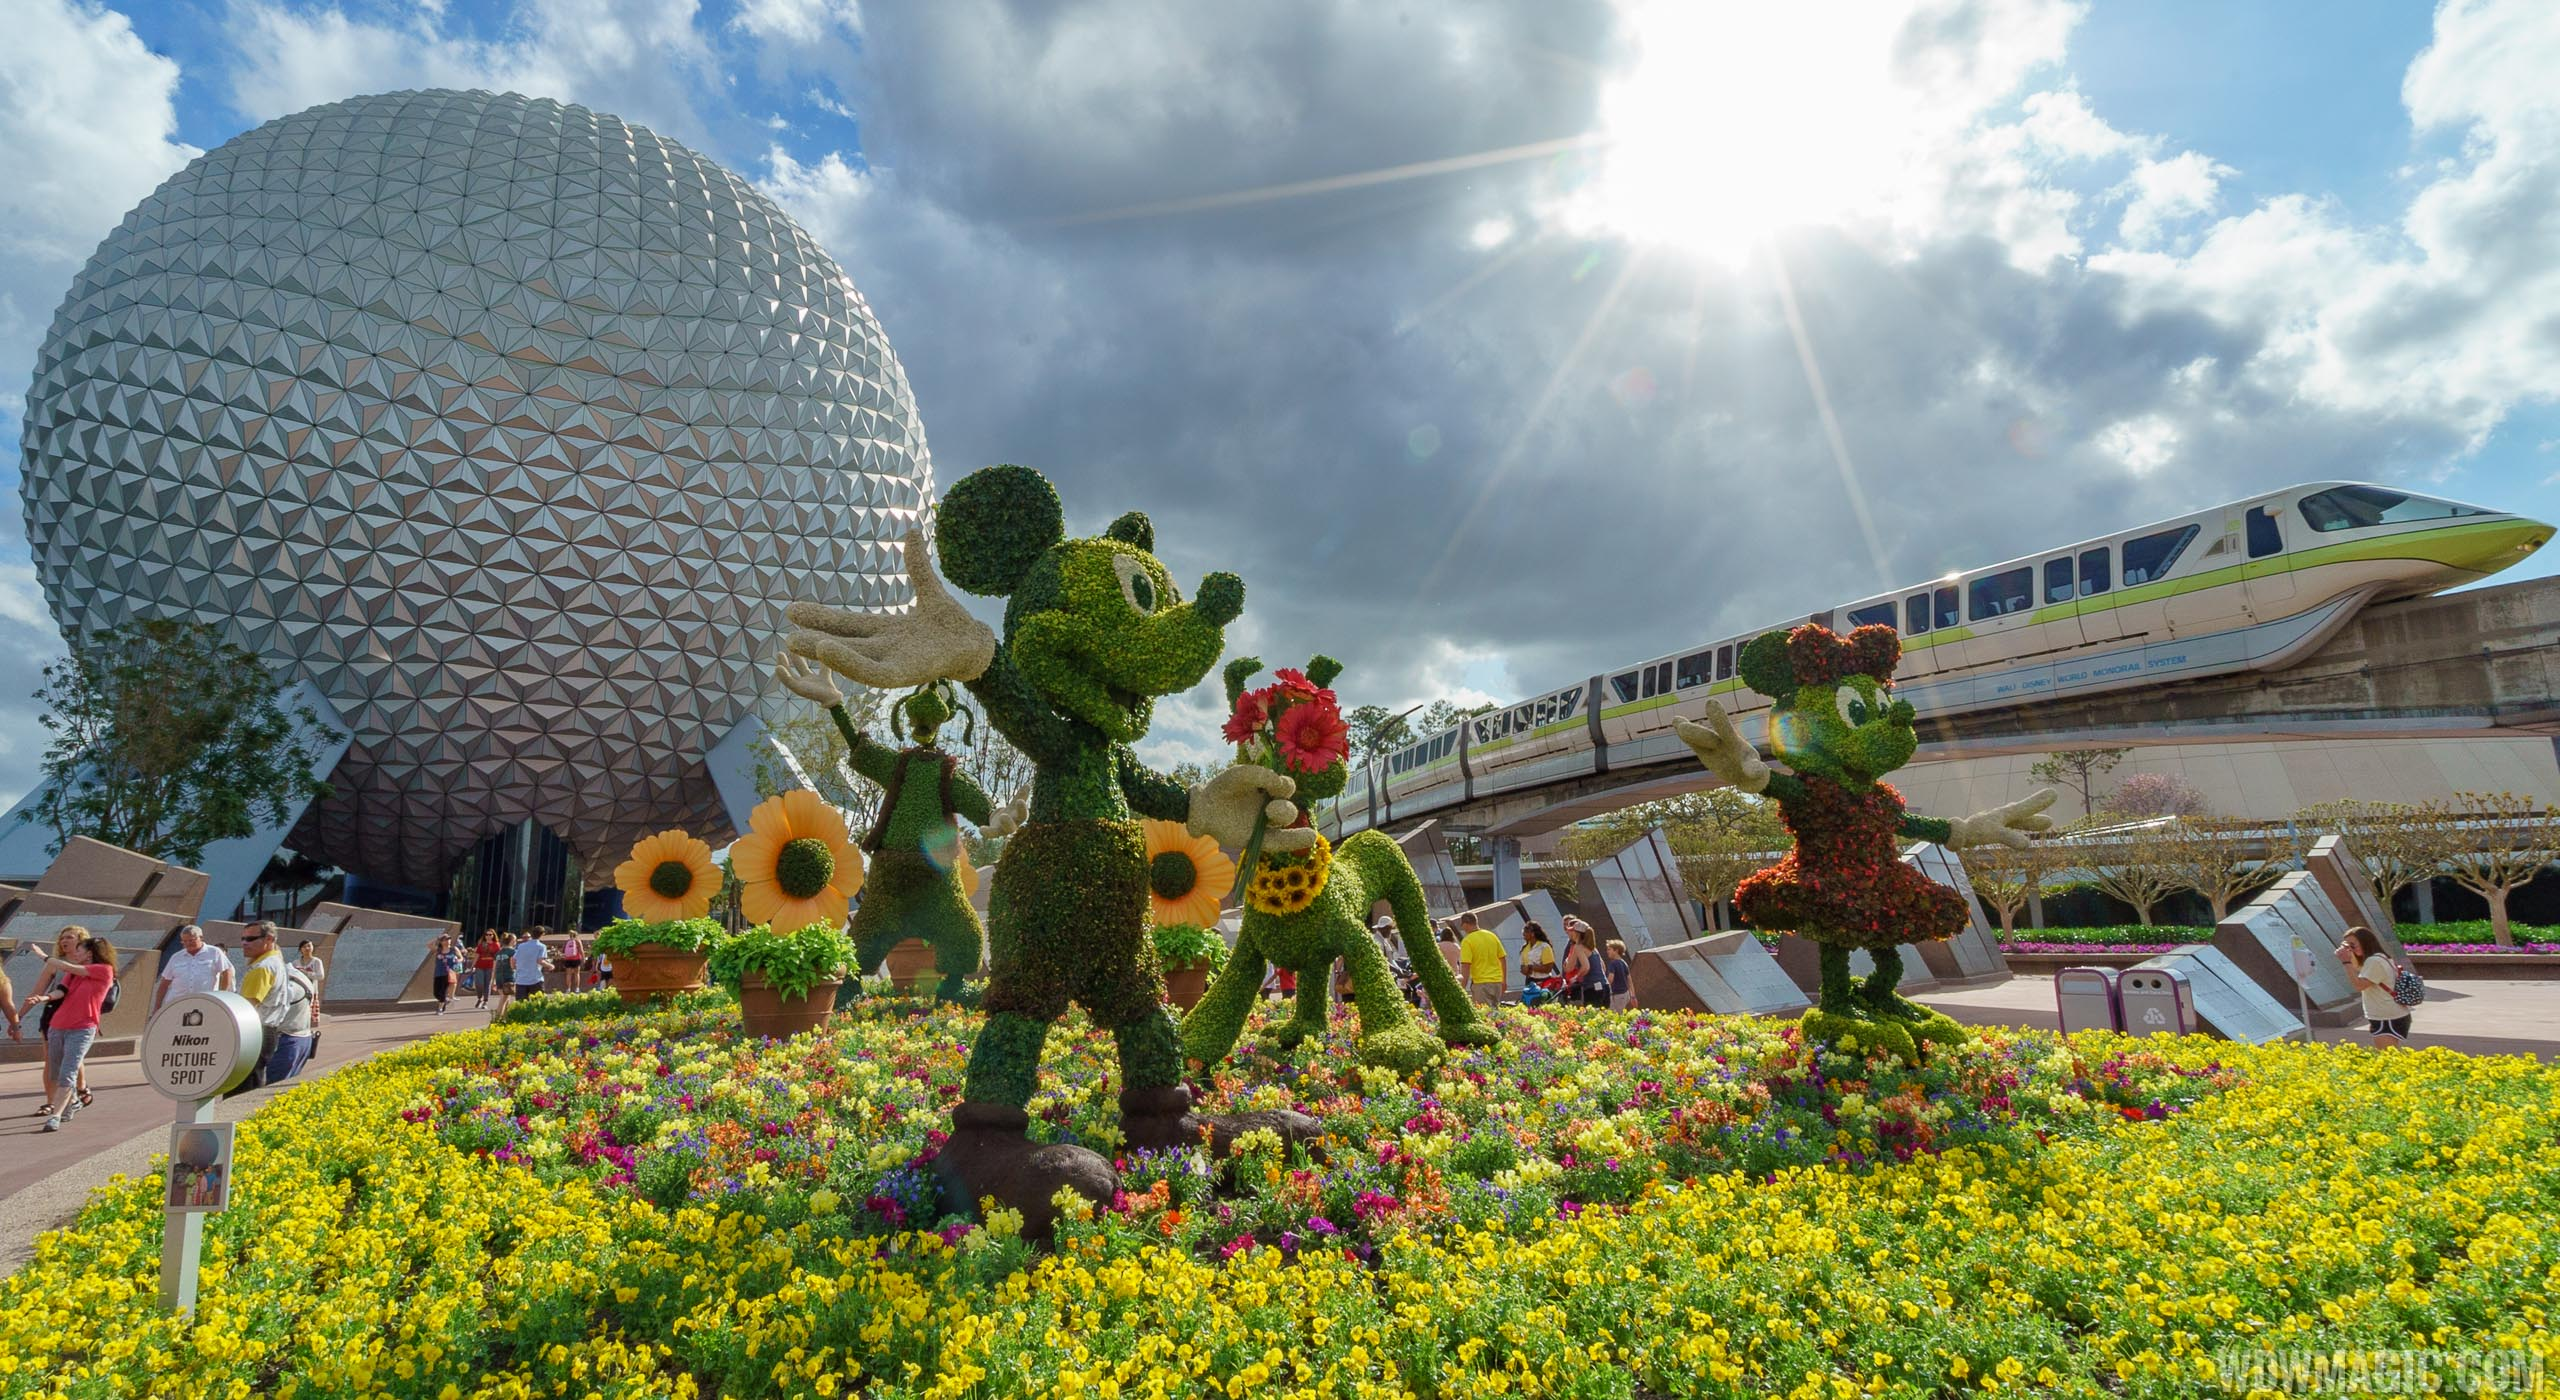 Pictures from the 2018 Epcot International Flower and Garden Festival